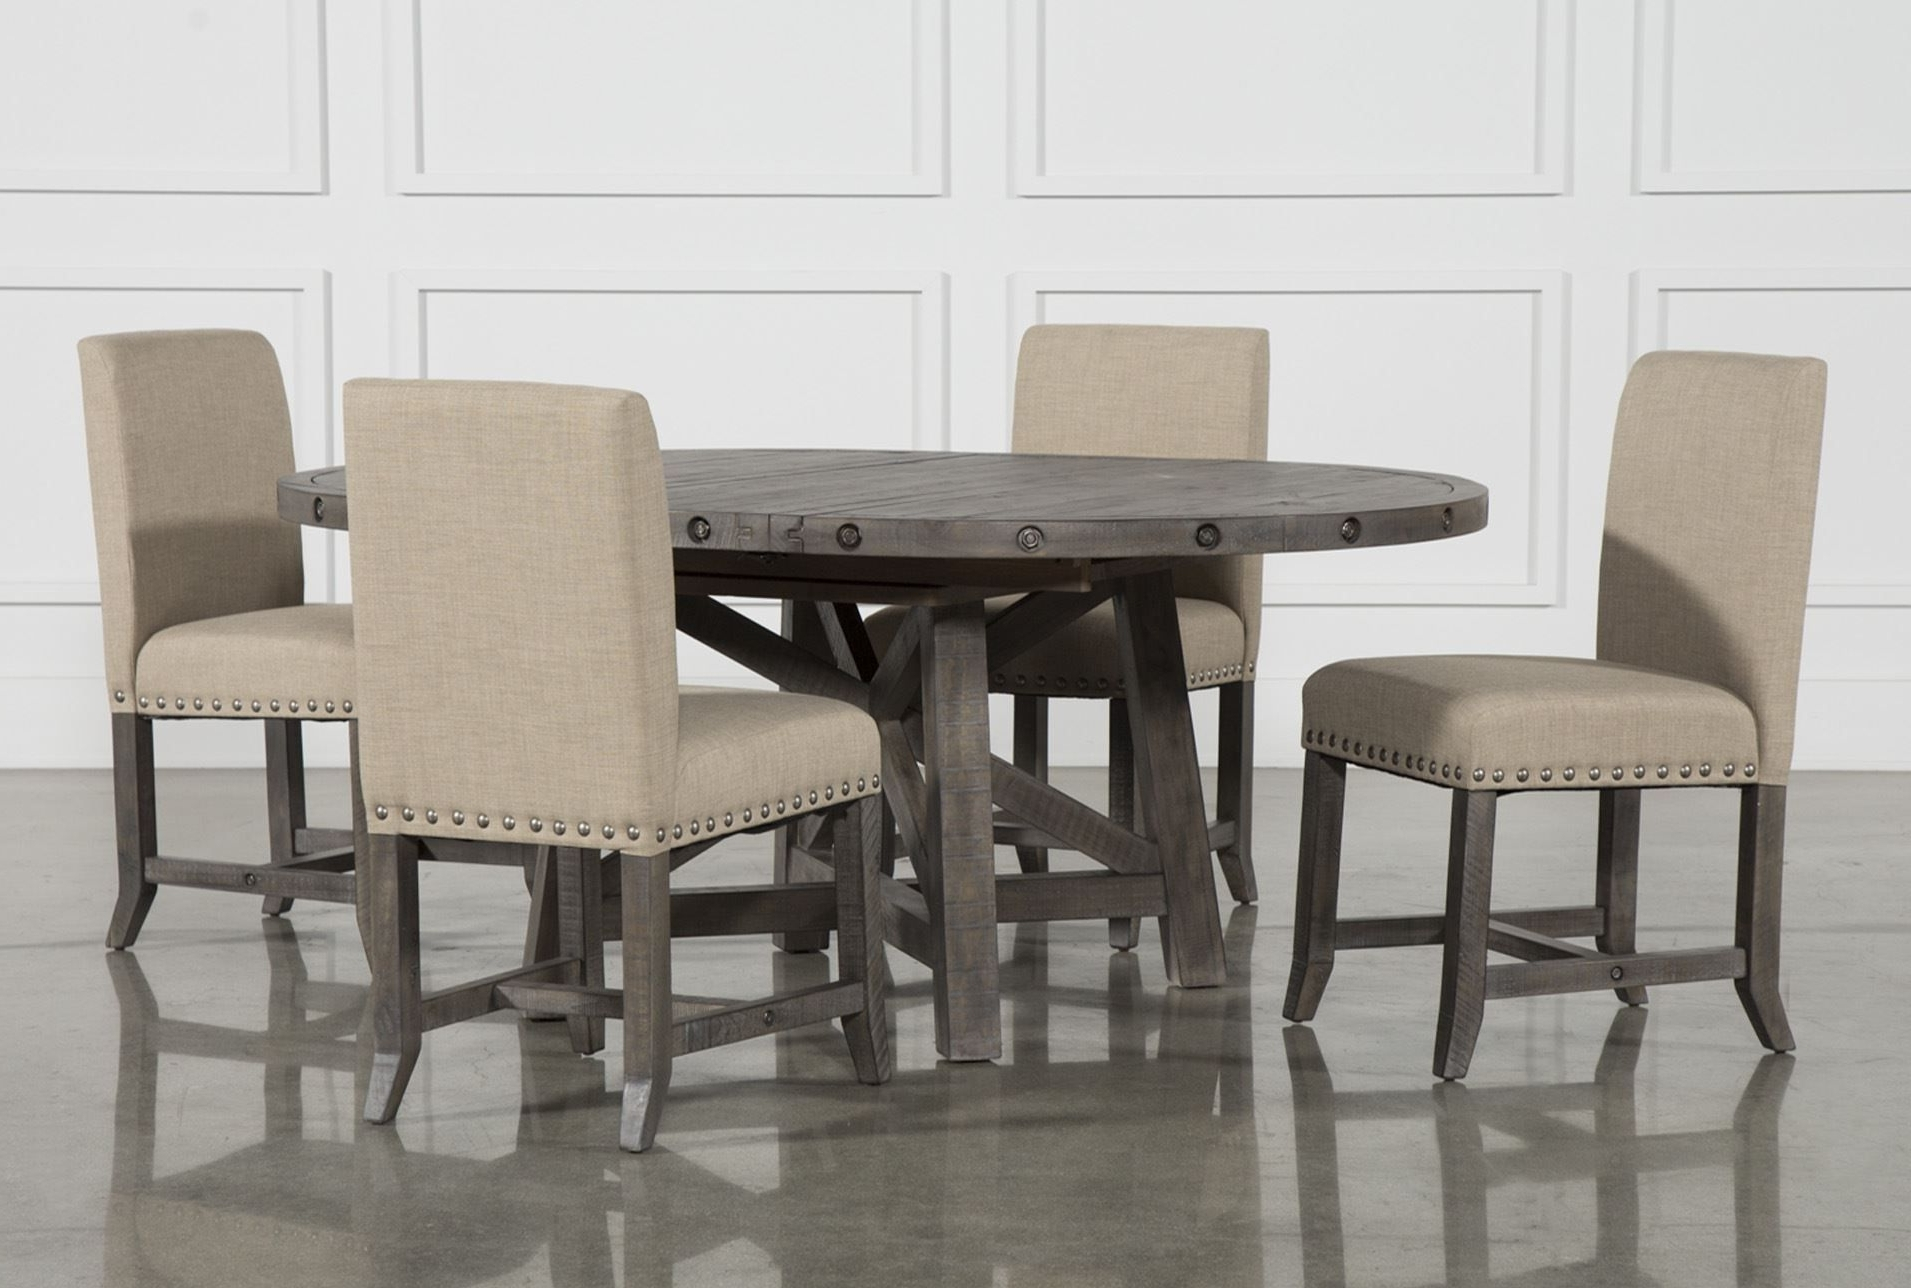 Jaxon Grey Rectangle Extension Dining Tables Pertaining To Trendy Jaxon Grey 5 Piece Round Extension Dining Set W/upholstered Chairs (View 11 of 25)